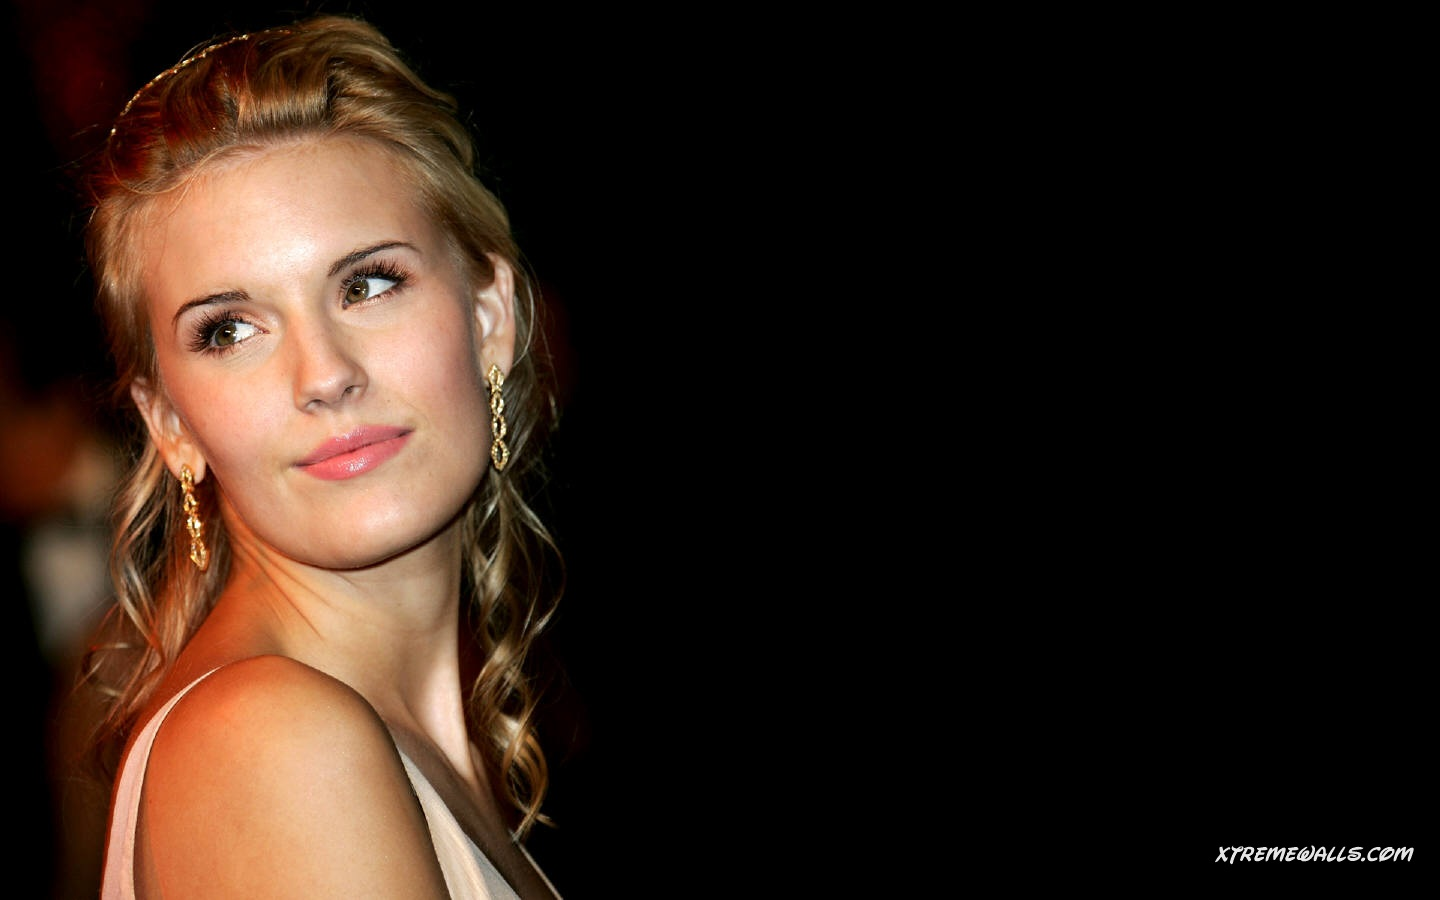 1440x900 - Maggie Grace Wallpapers 9